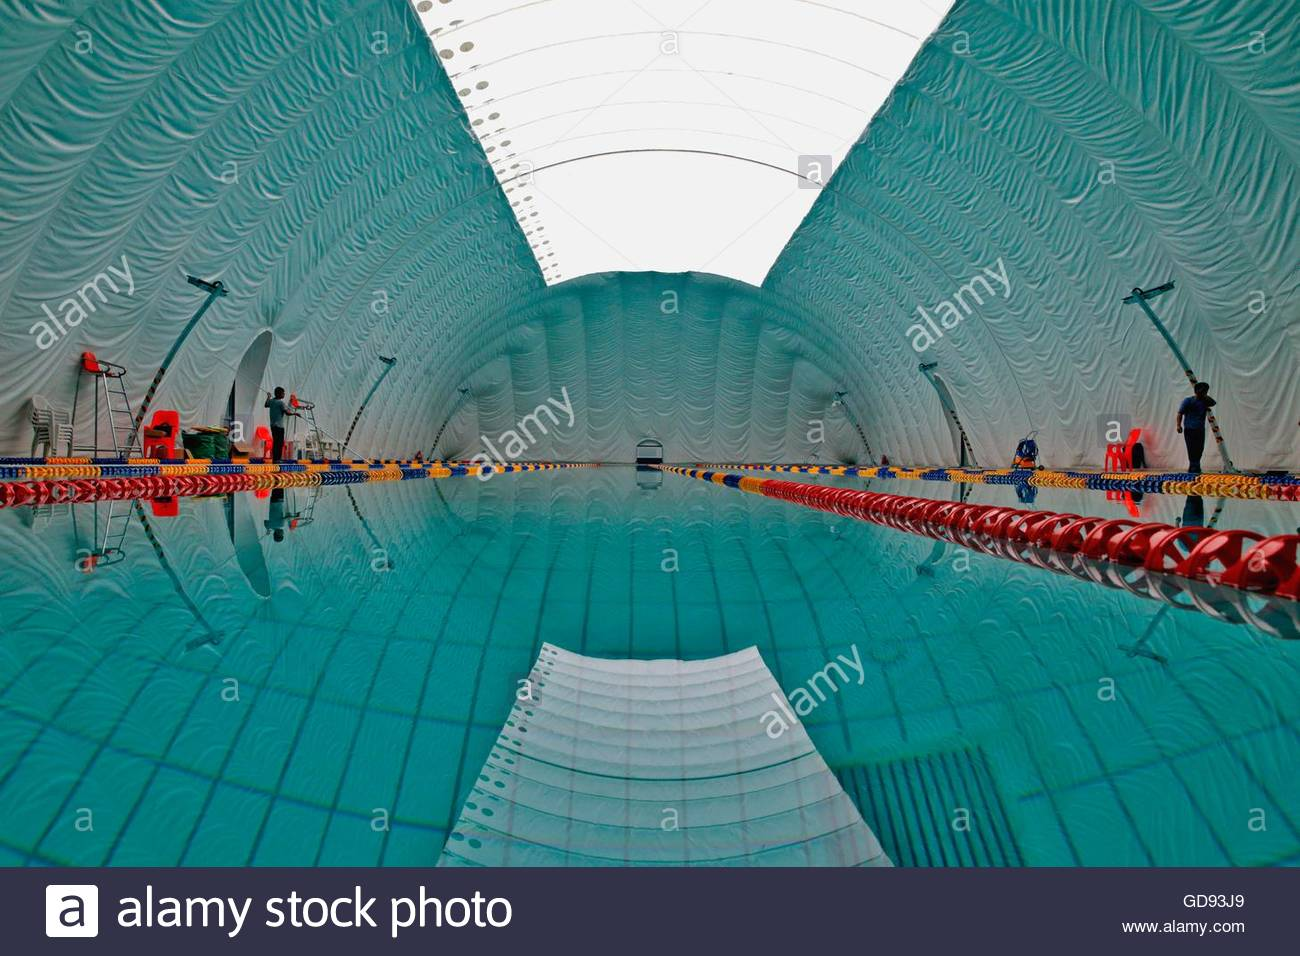 Tianjin, China. 14th July, 2016. The 1st natatorium made of air film covers an area of 1400 square meters with French - Stock Image